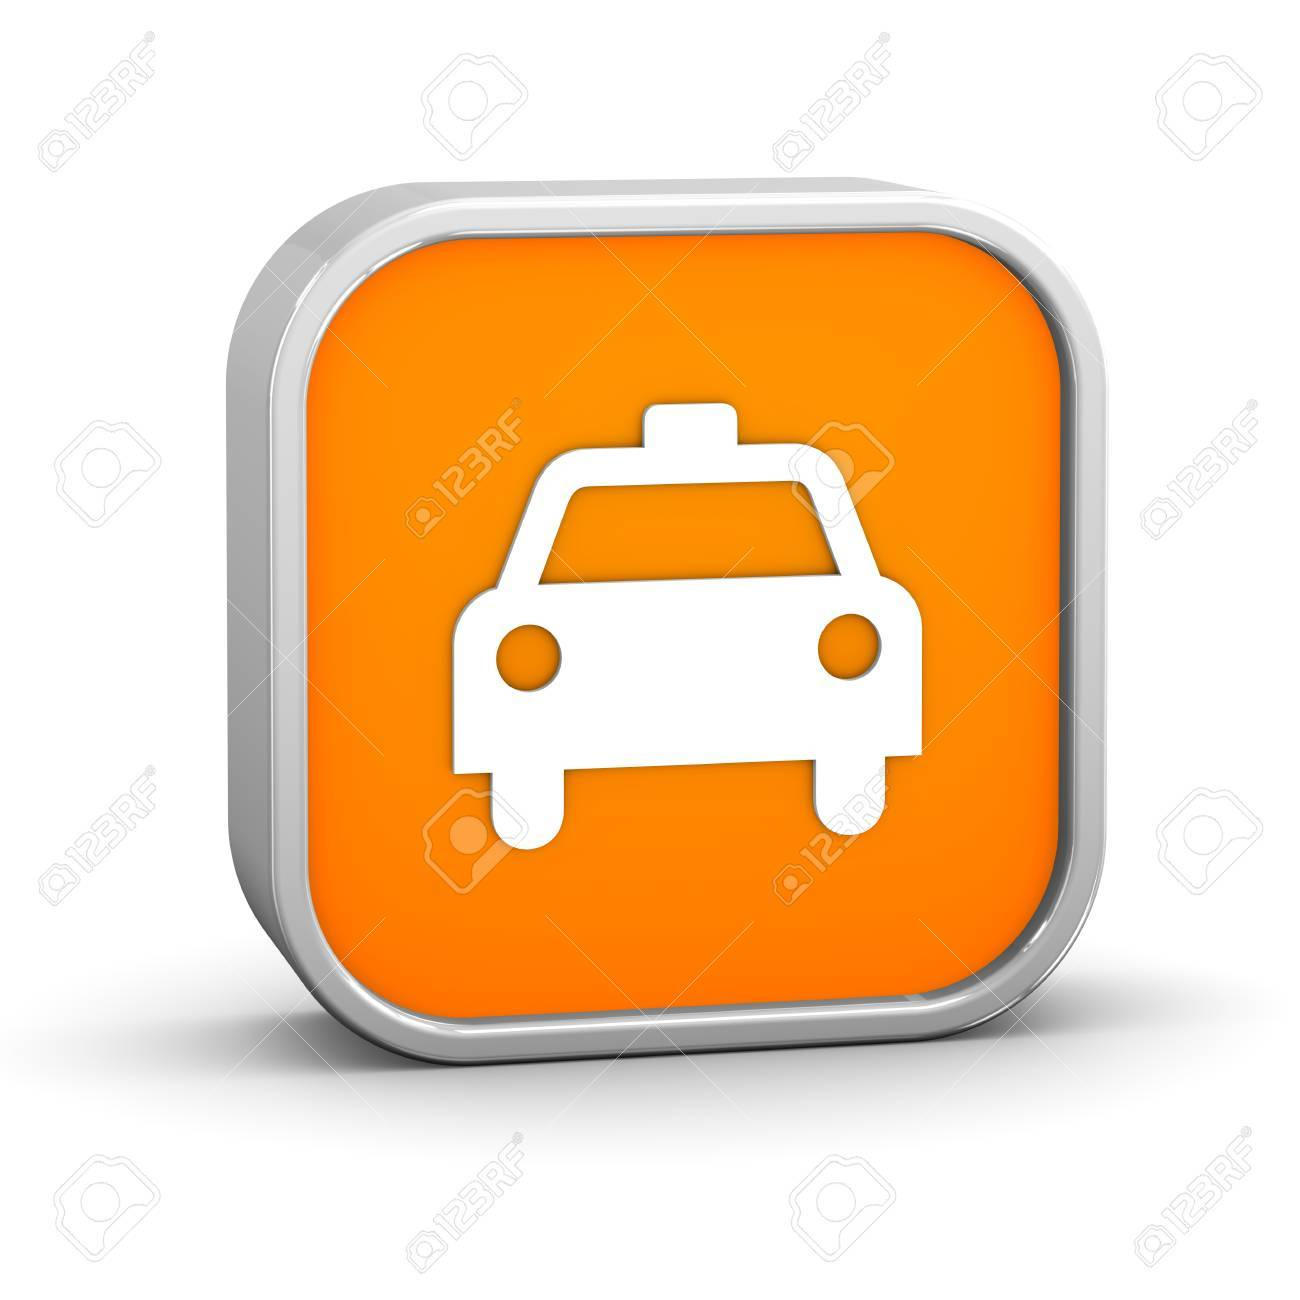 Taxi sign on a white background. Part of a series. Stock Photo - 8802198